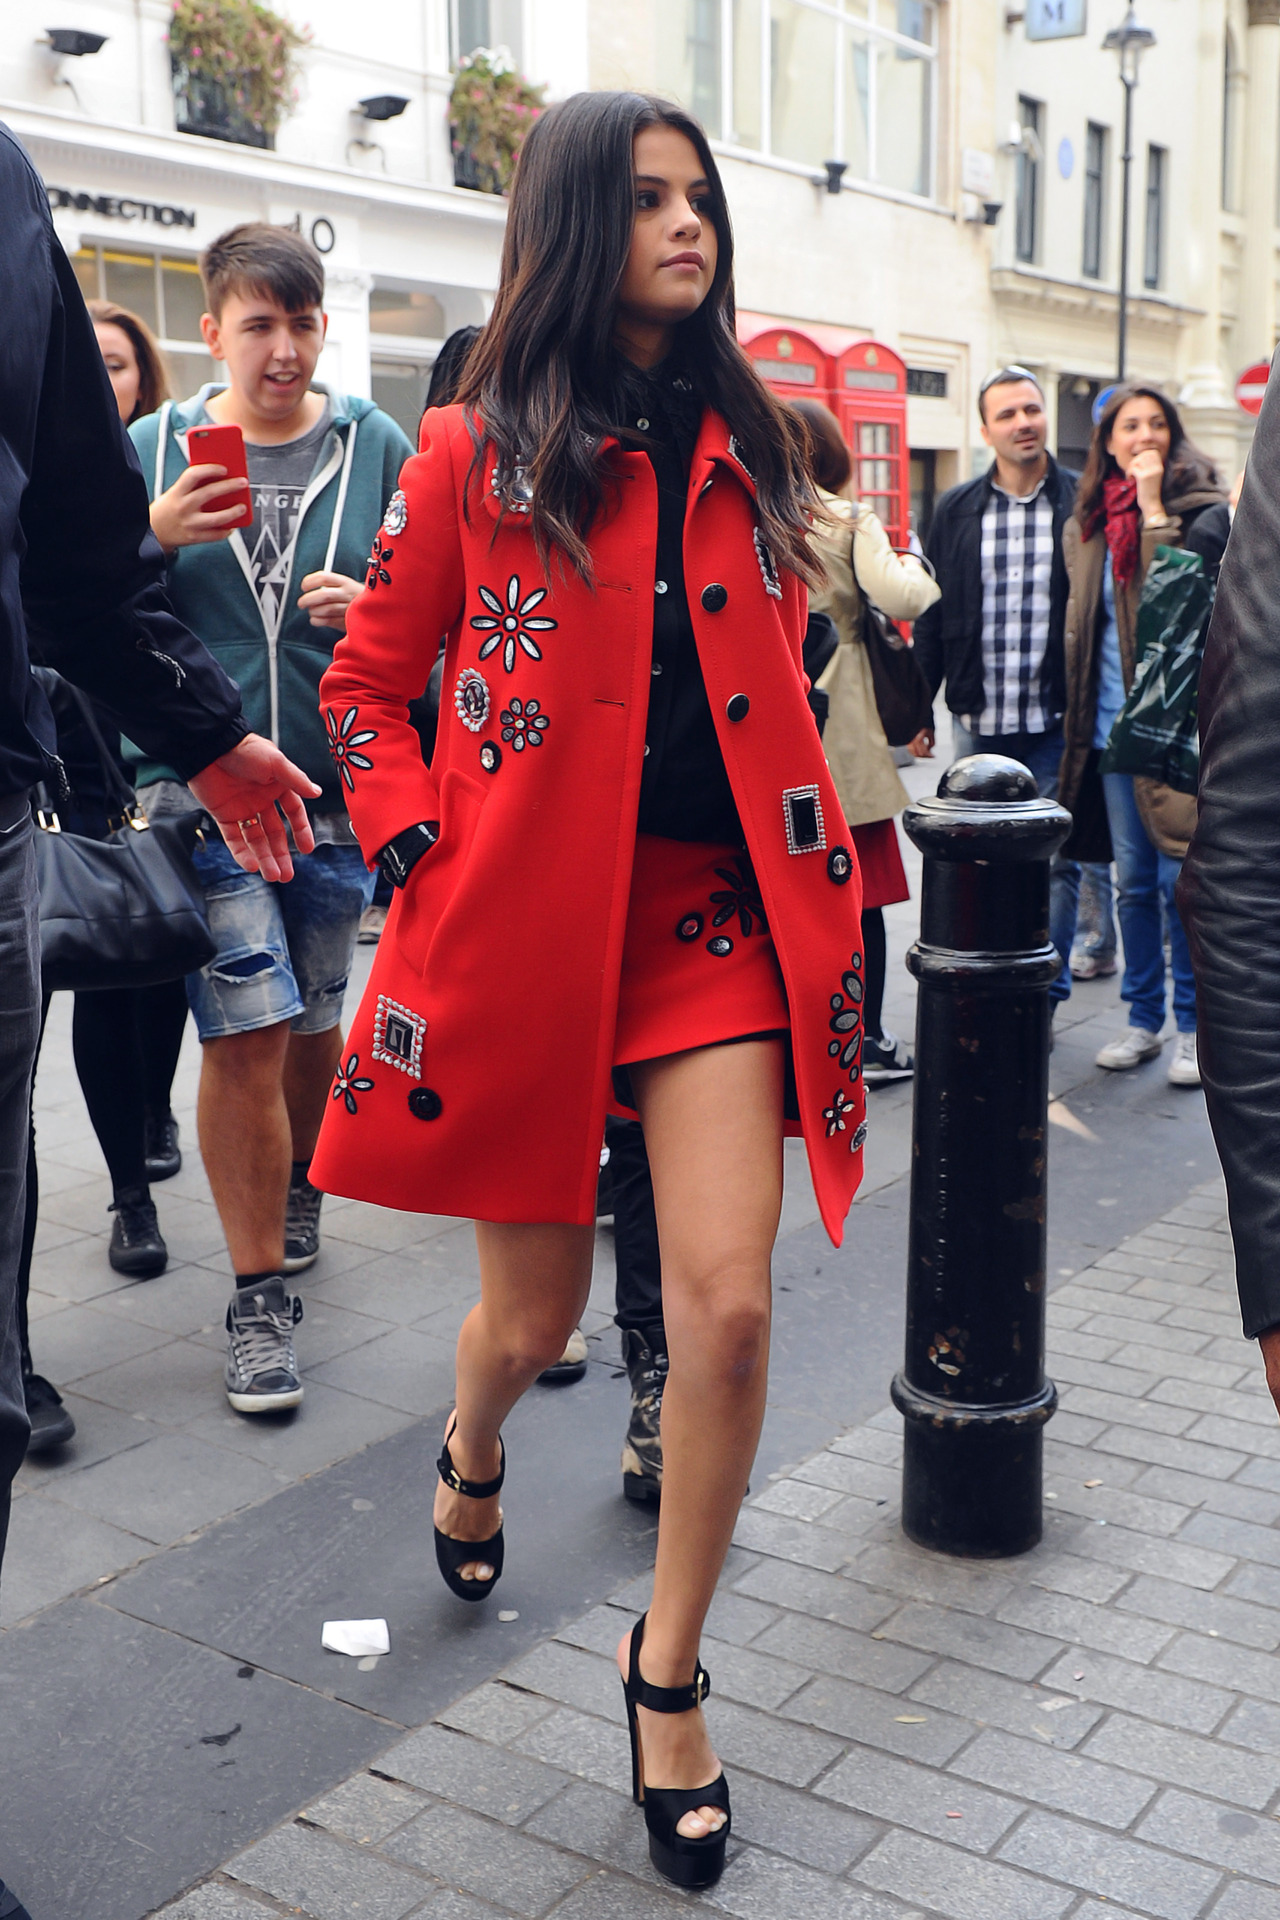 selenaonly: 25. September 2015 - Selena out and about in London, England. Selena x bae